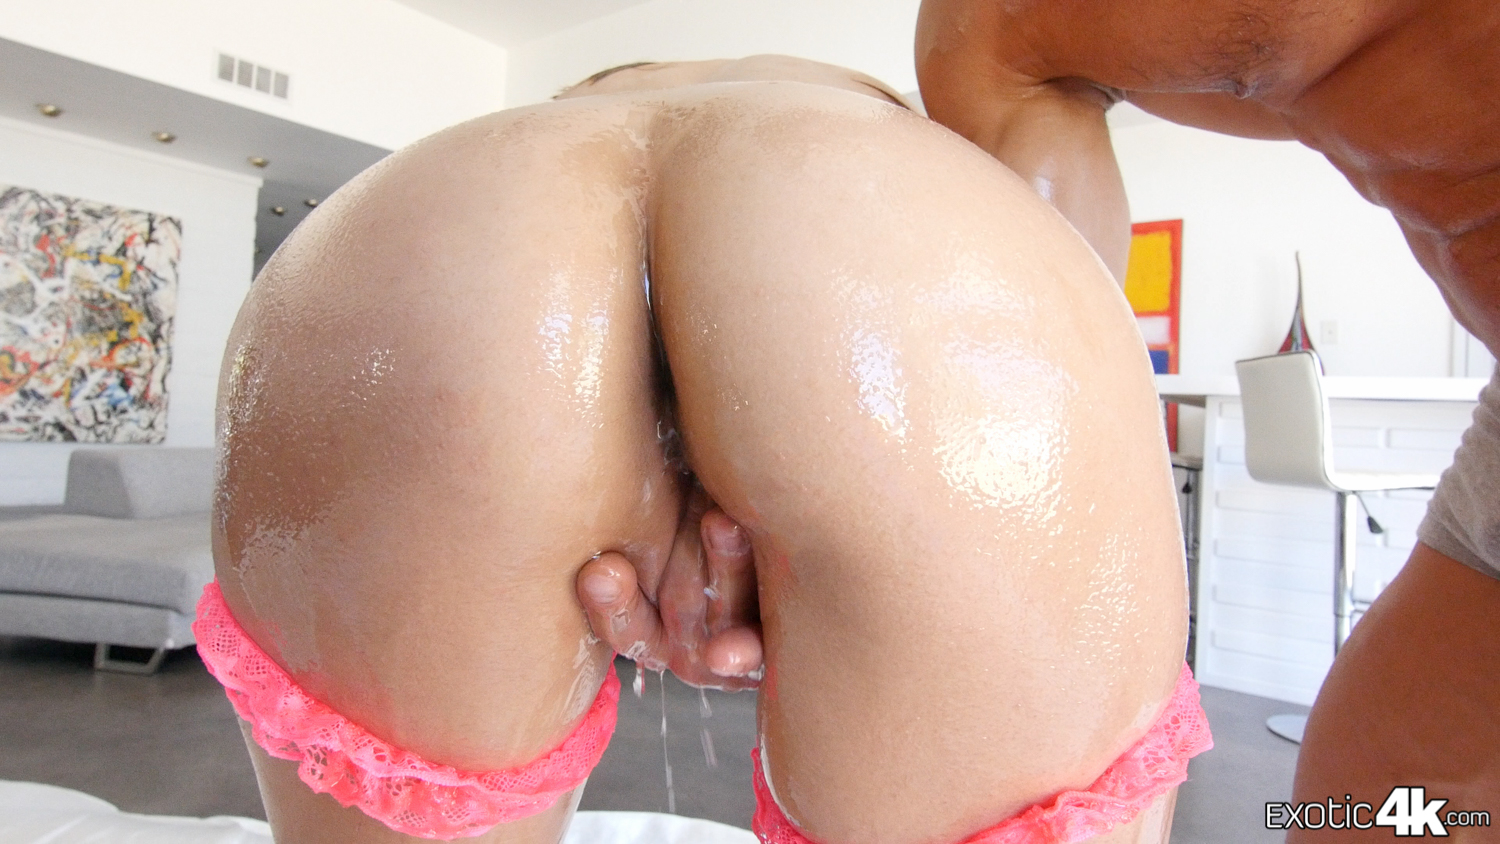 Watch Big Booty Asian Hana Haruna Slippery Wet Huge Butt Get Creampied